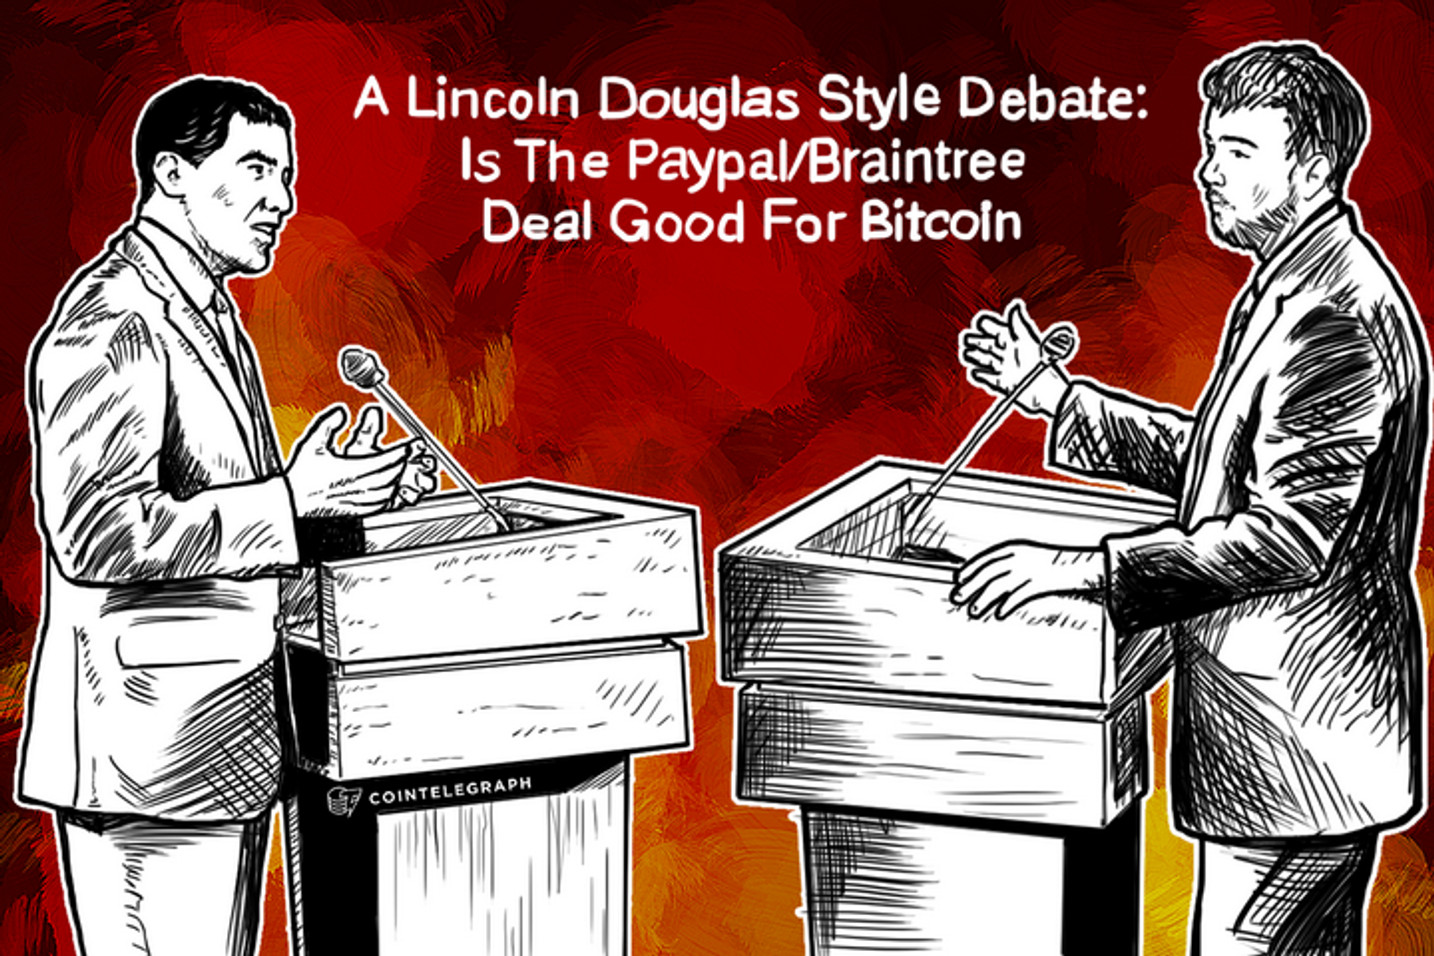 A Lincoln Douglas Style Debate: Is The Paypal/Braintree Deal Good For Bitcoin